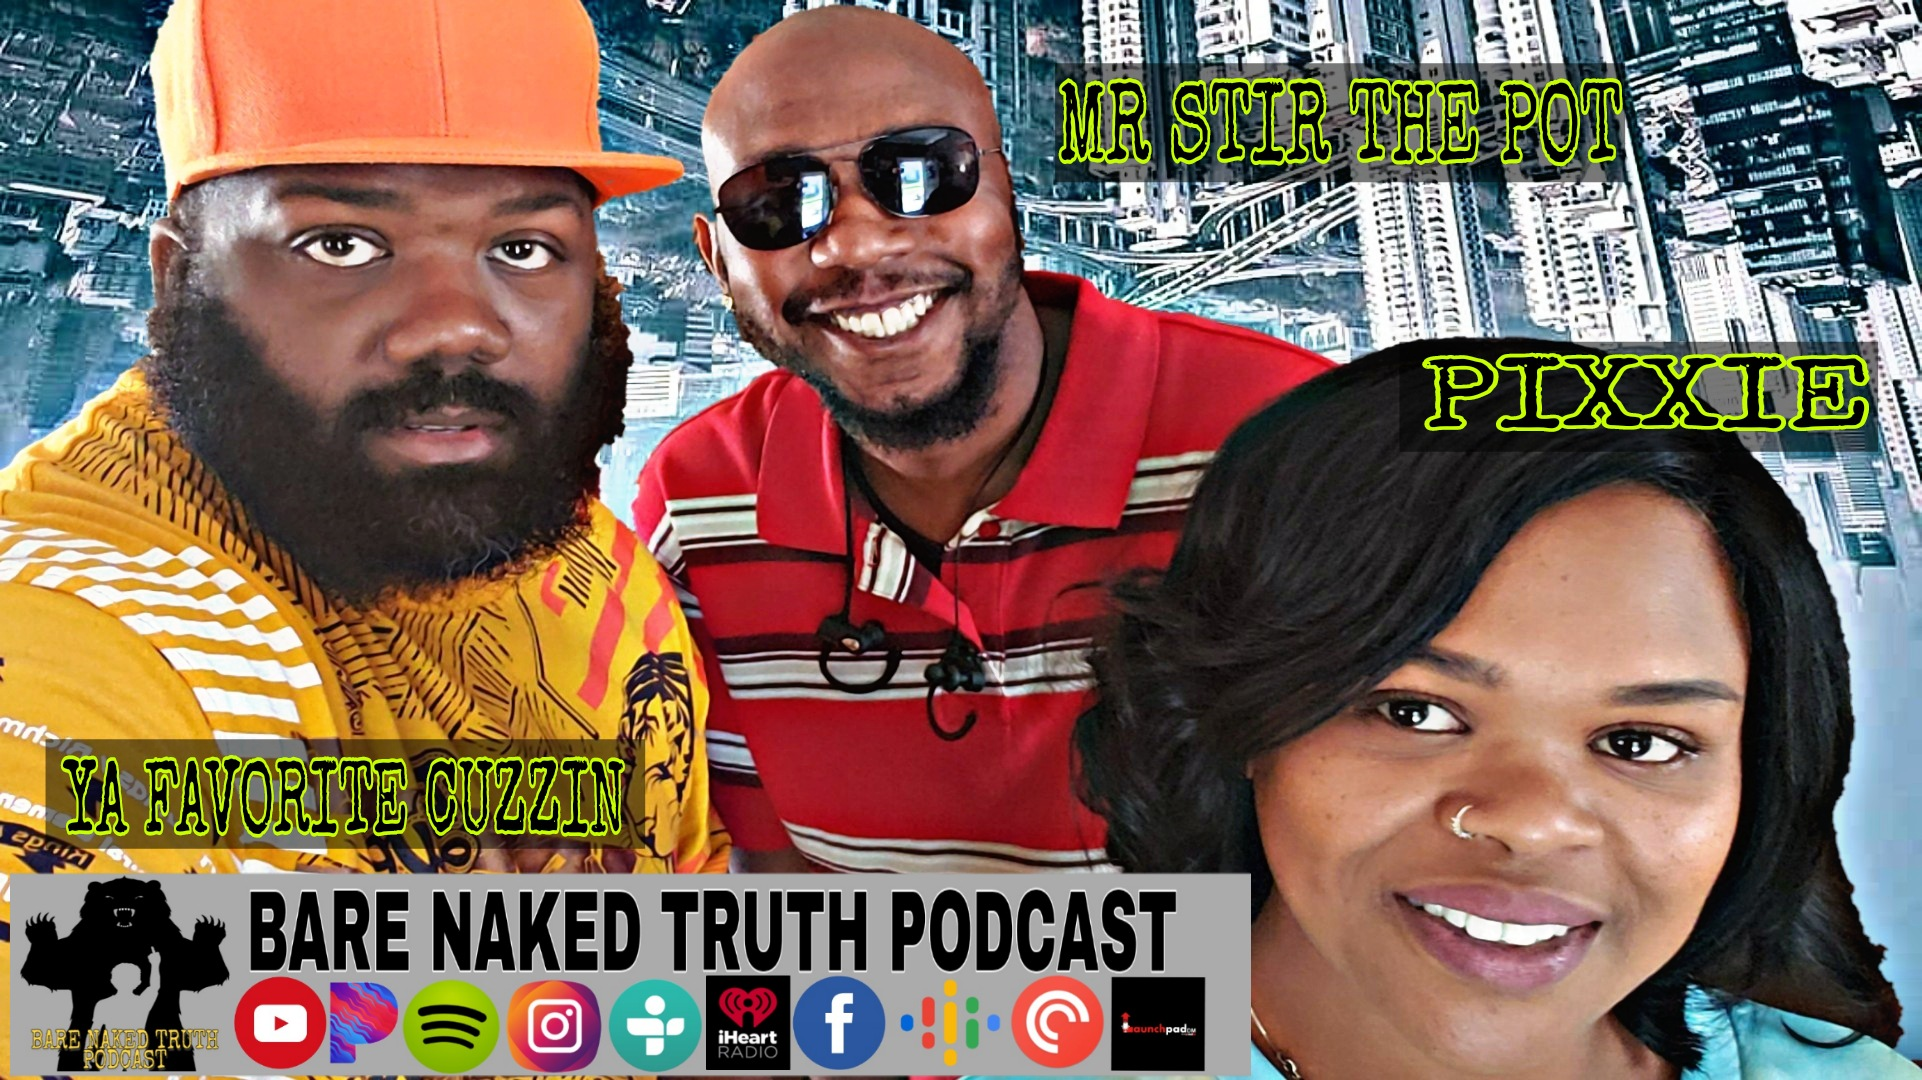 BARE NAKED TRUTH PODCAST